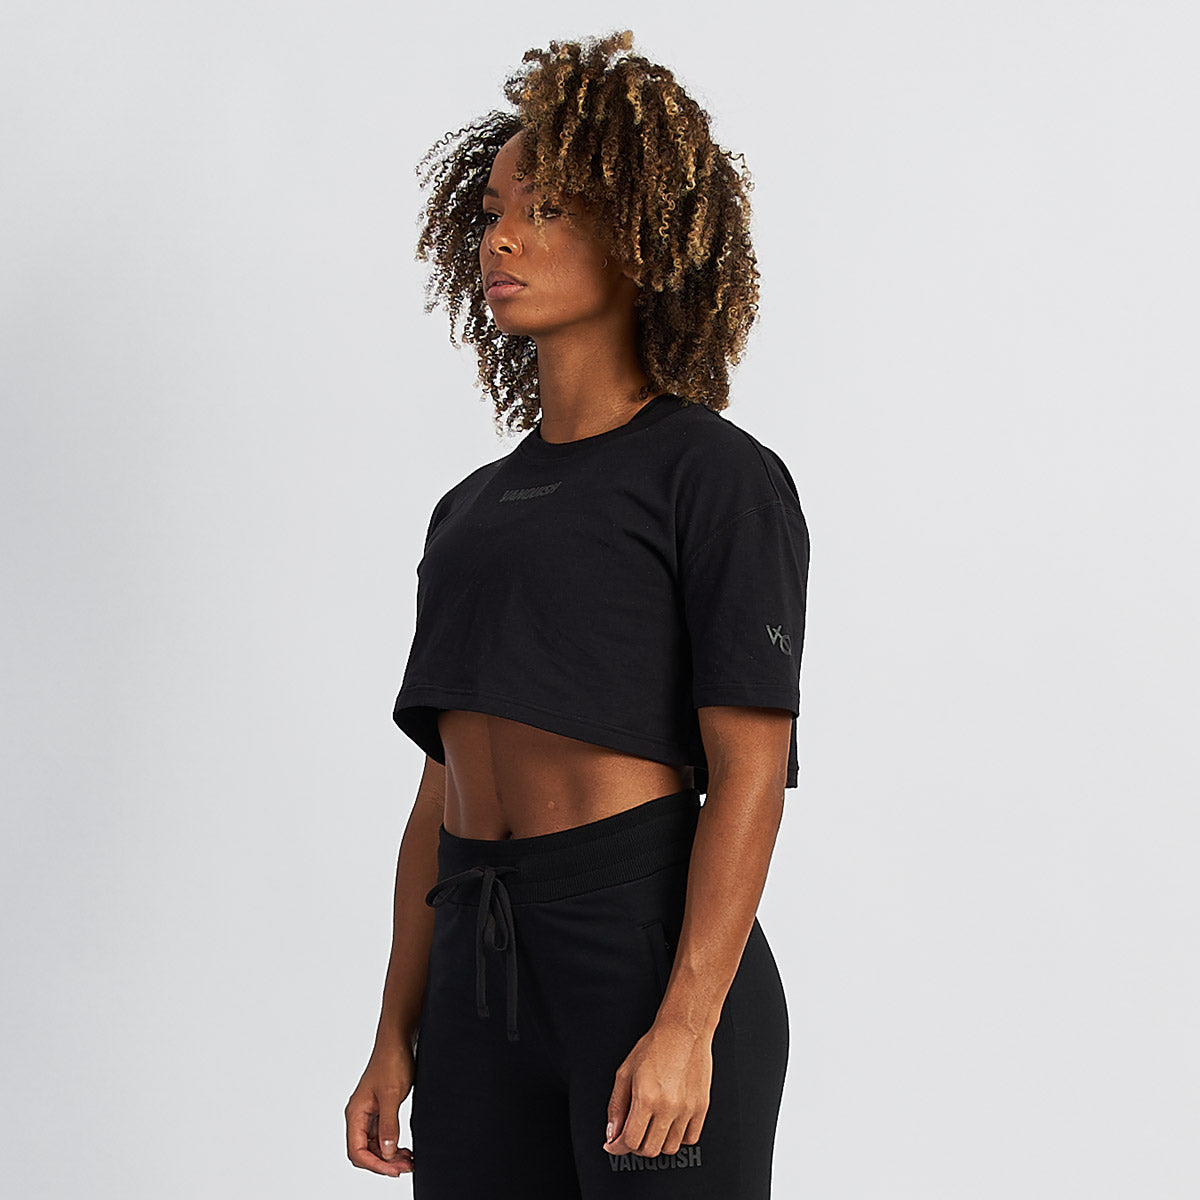 Vanquish Women's Black Friday Reflective Cropped T Shirt